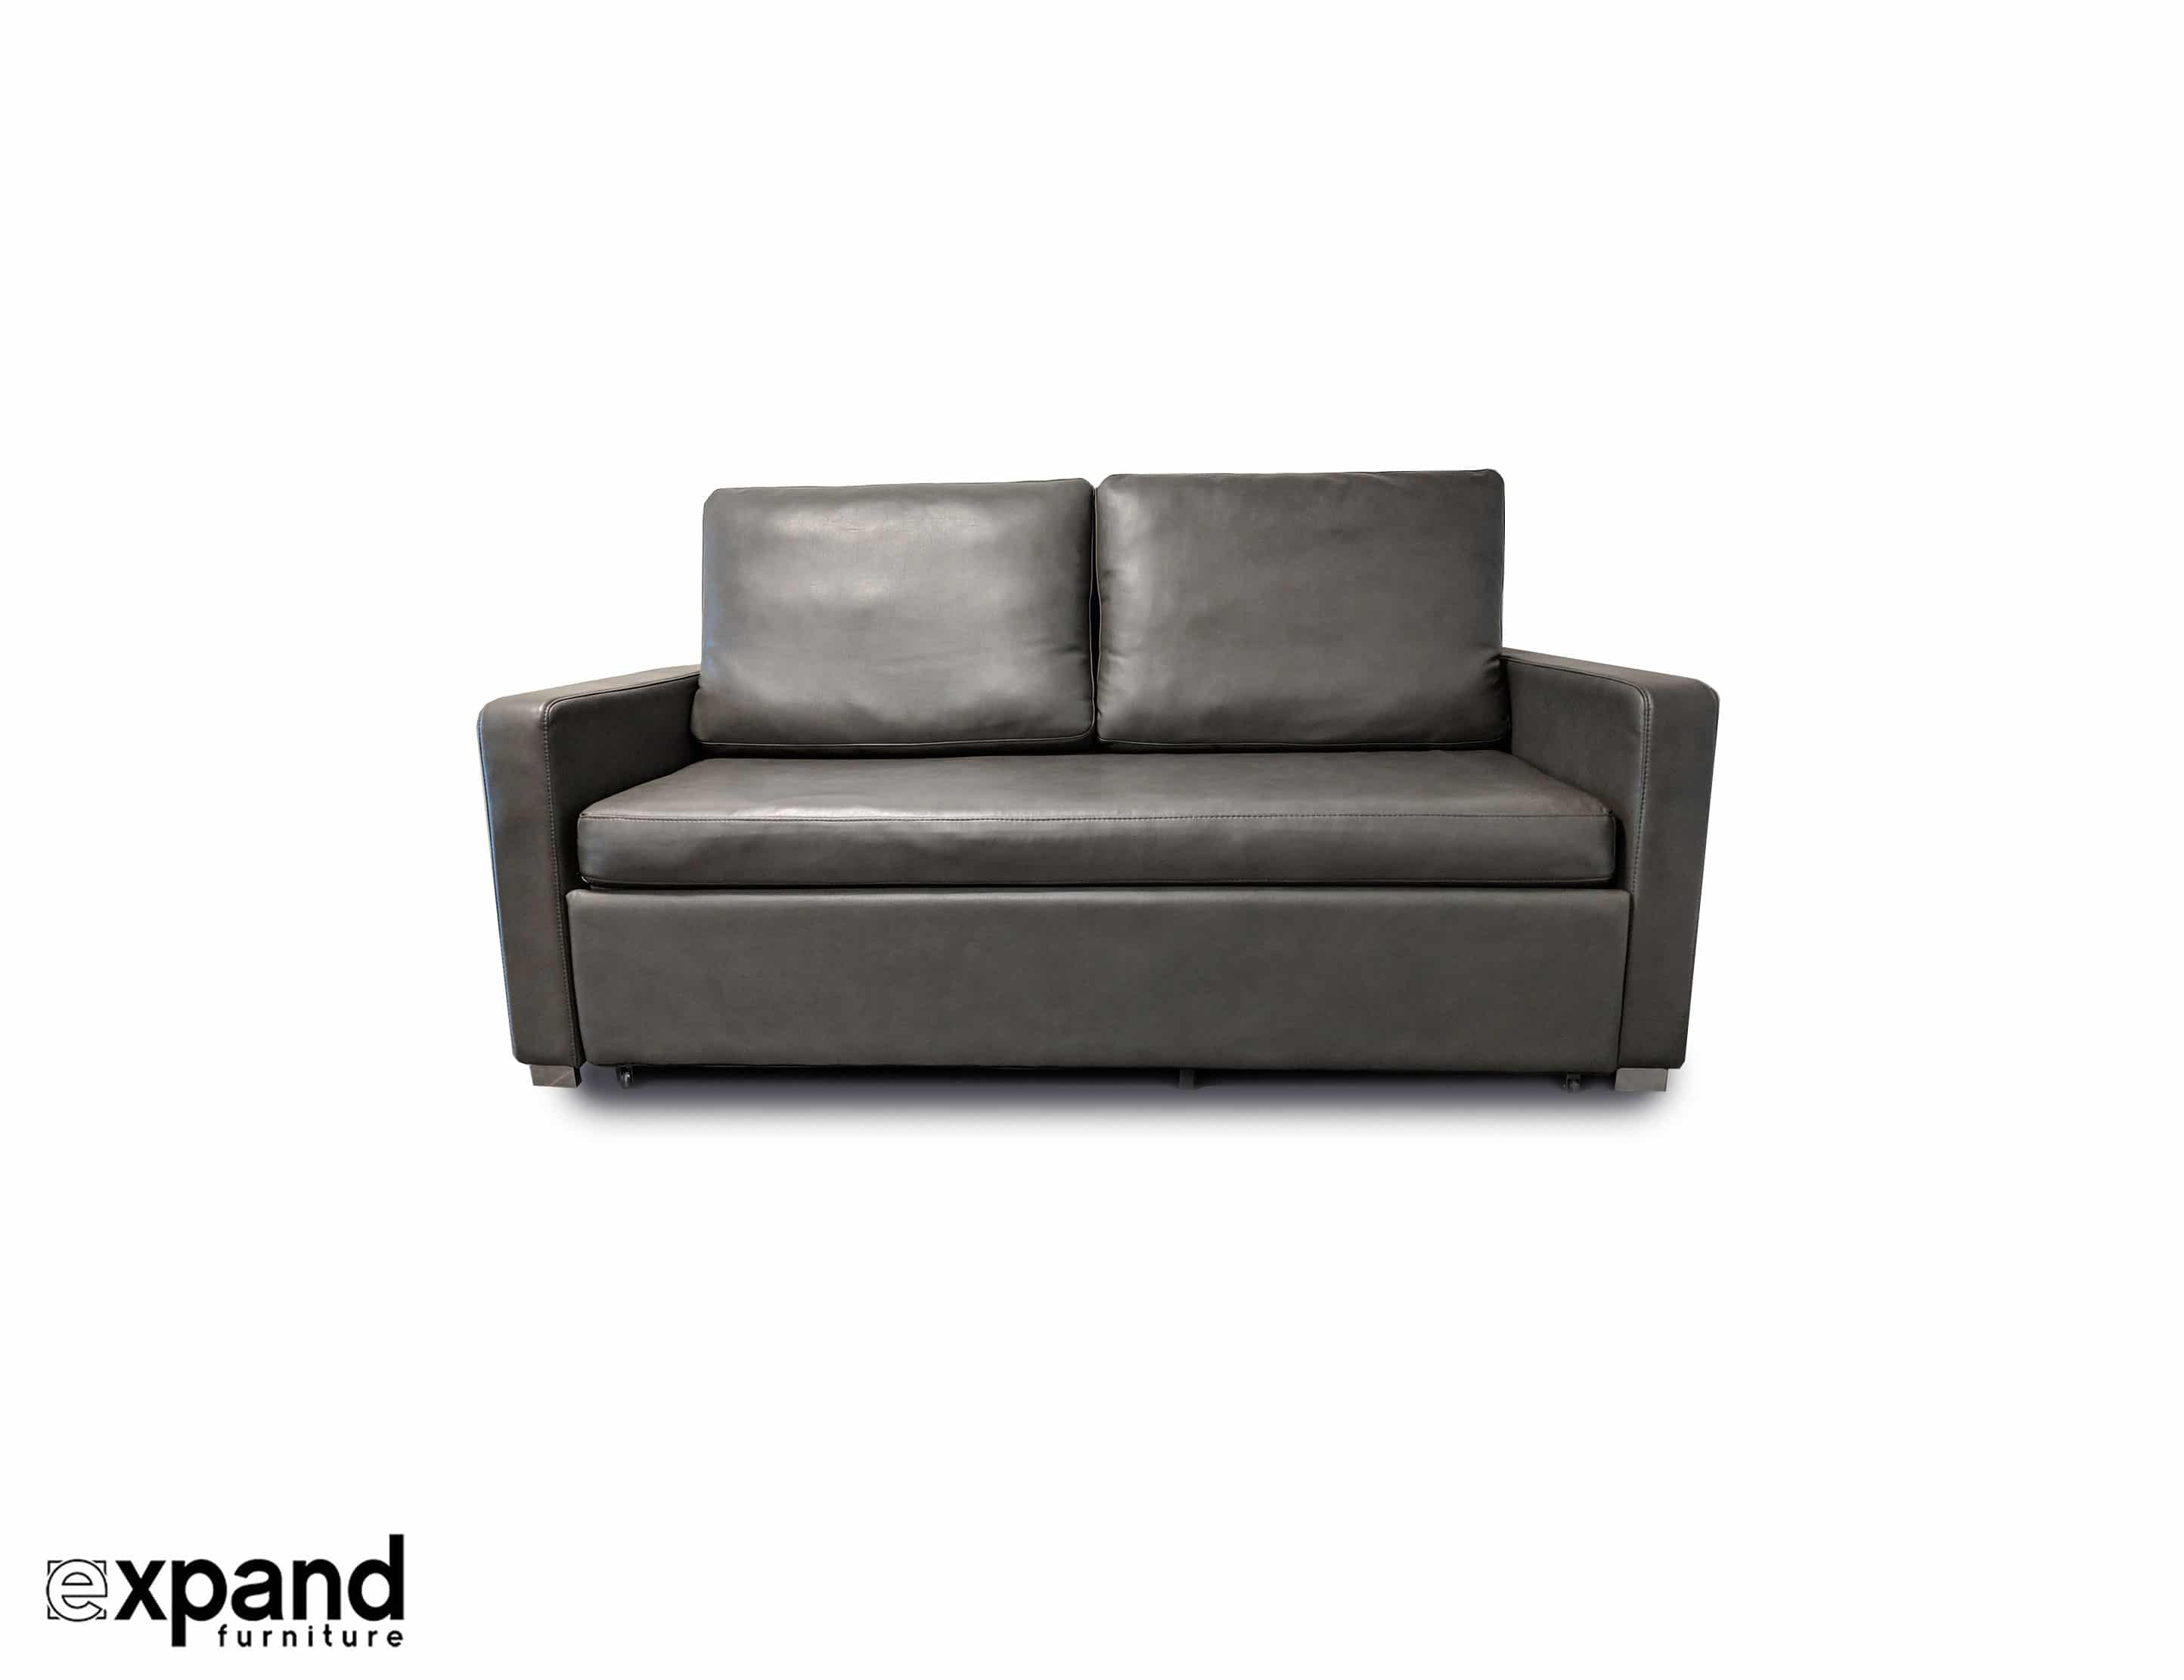 Harmony Sofa Bed Queen American Leather Eco Expand Furniture